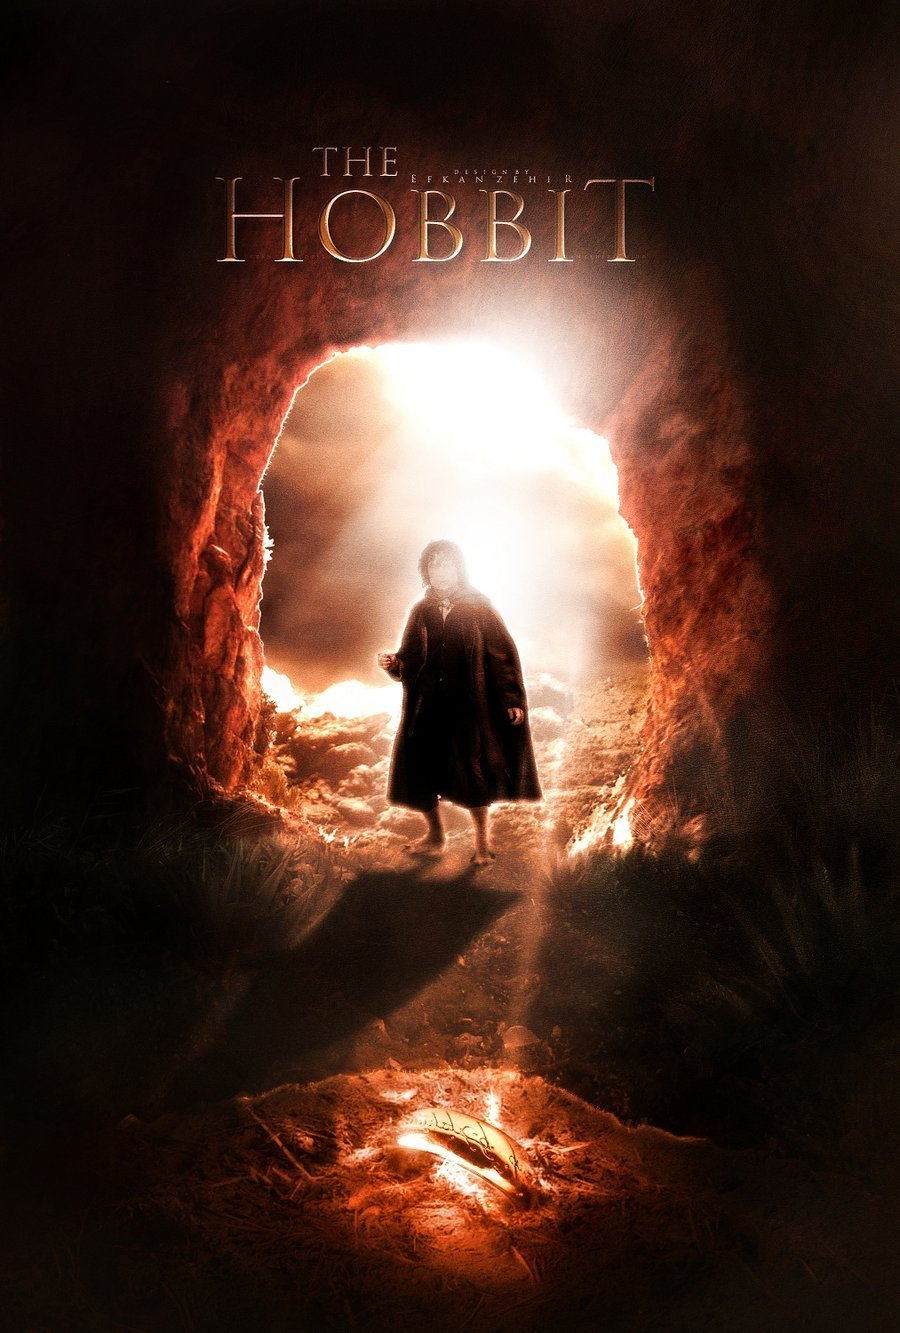 The Hobbit